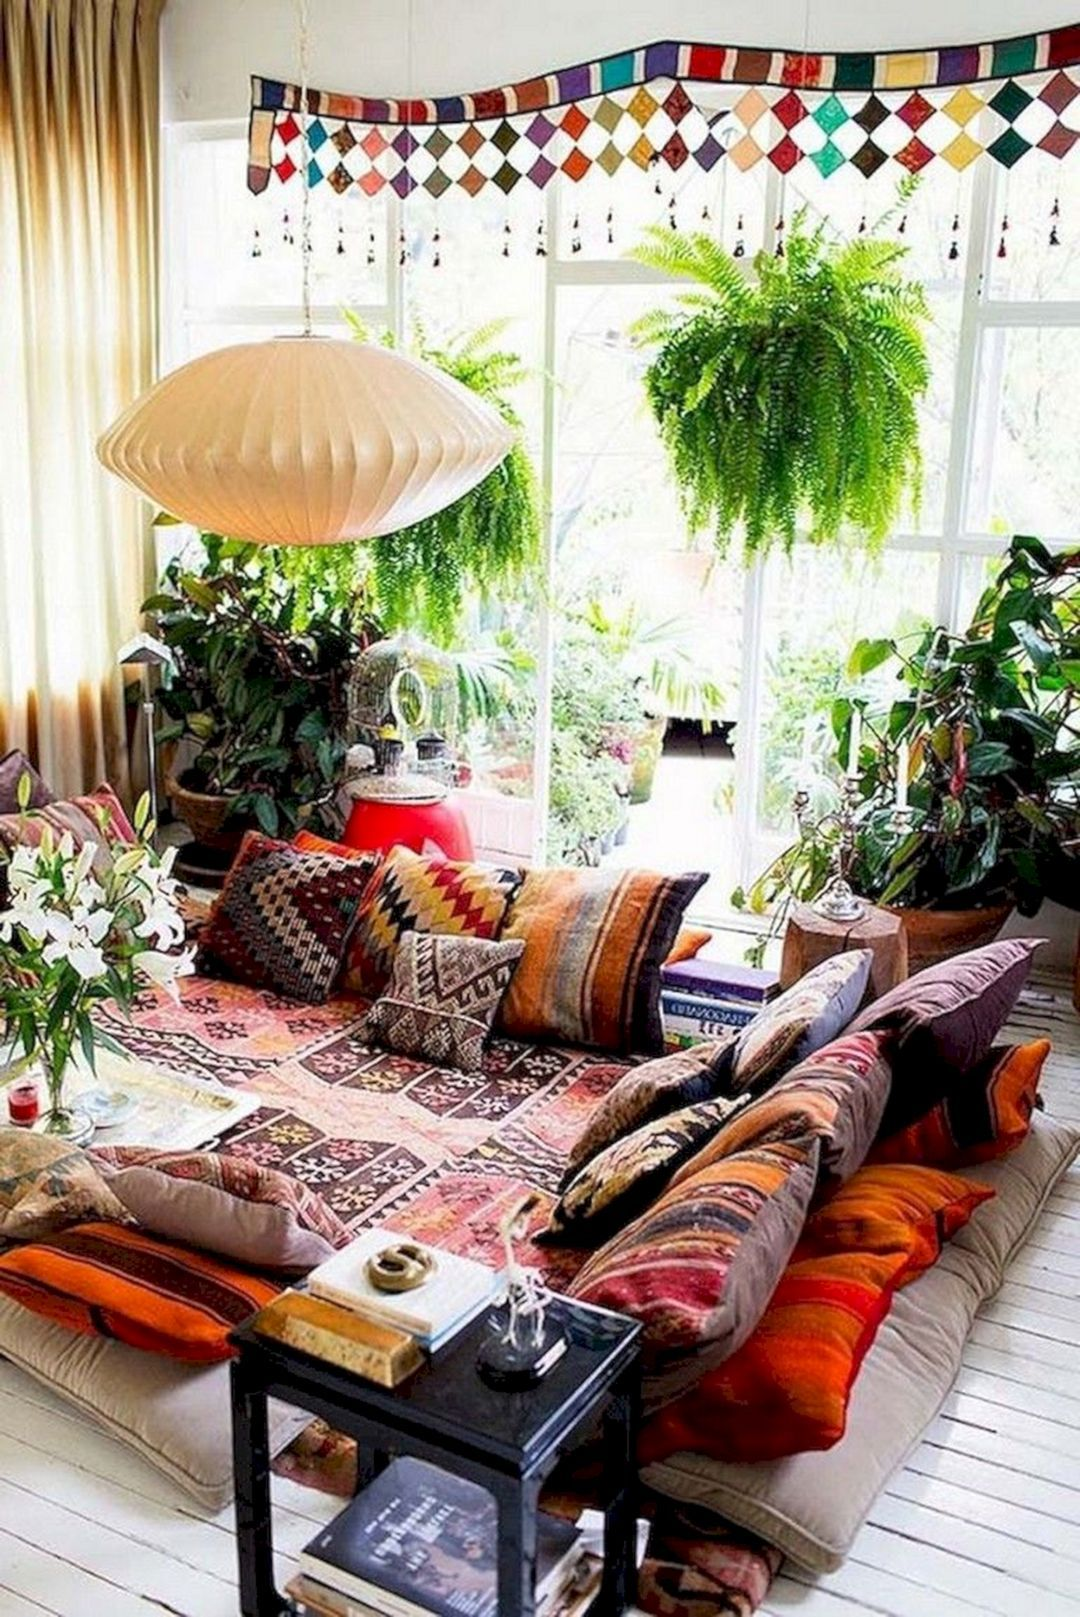 Photo of 24 Stunning Chic Bohemian Home Decorating Ideas For Best Inspiration